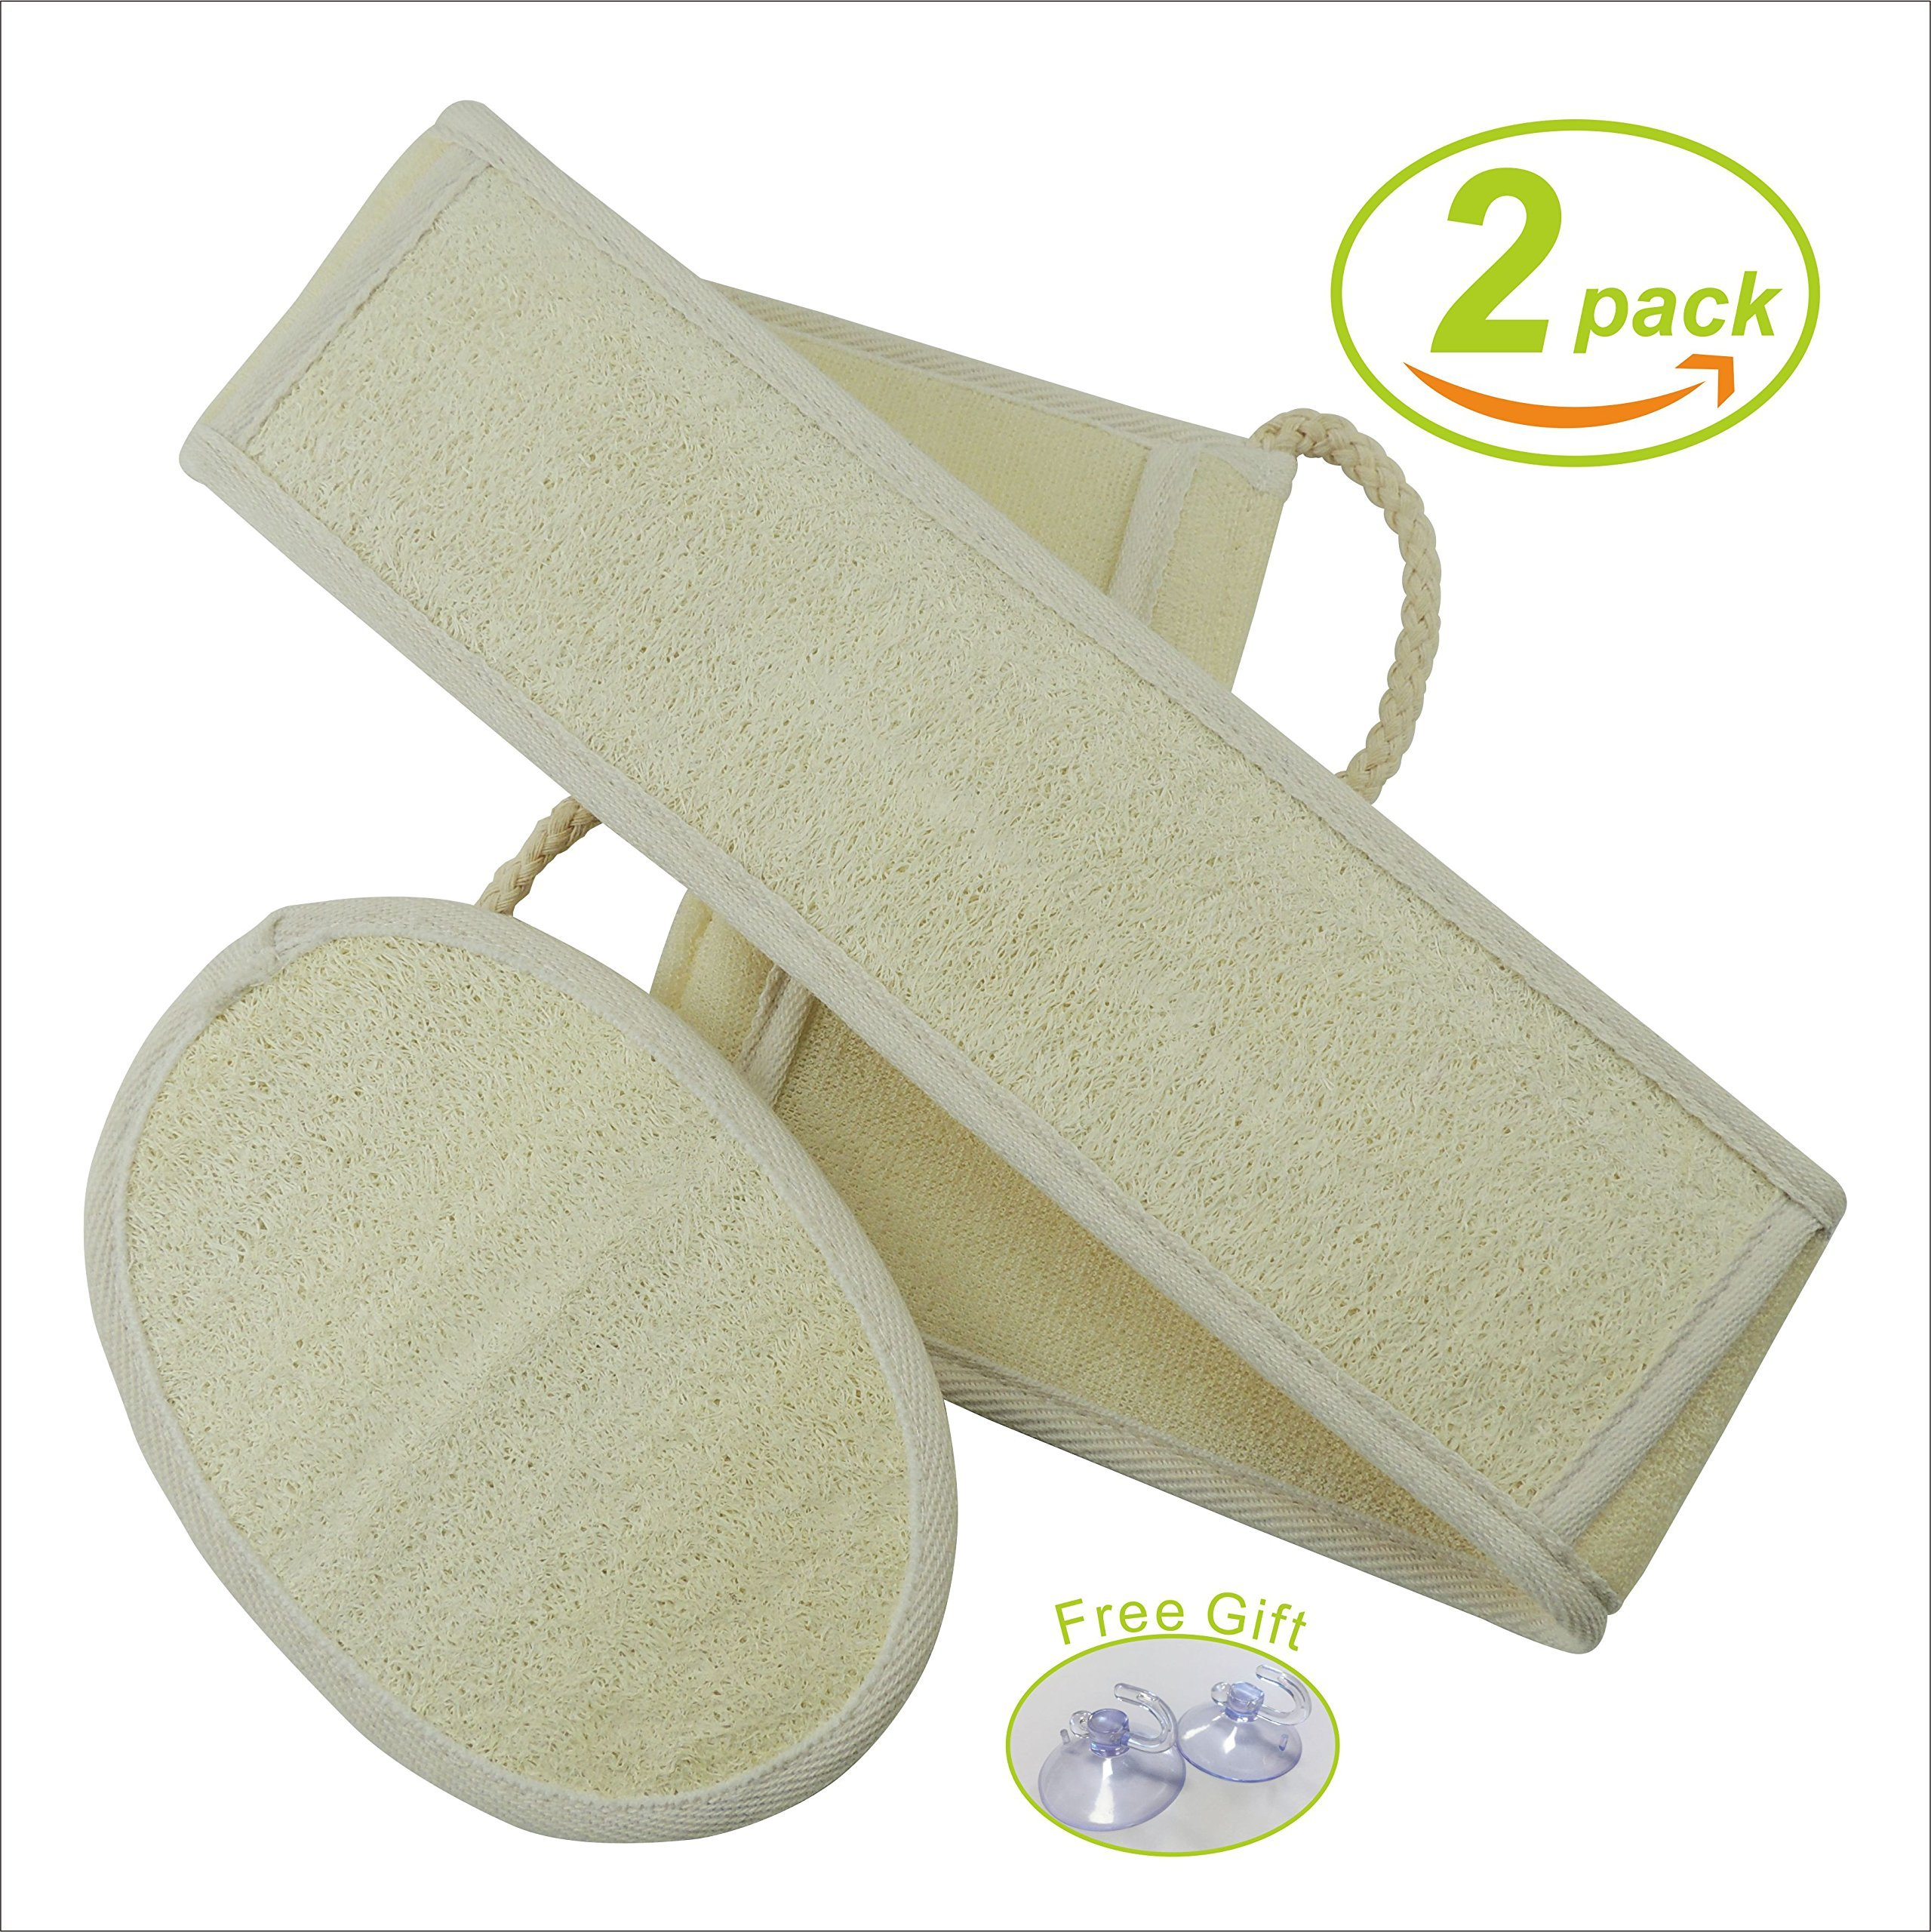 Loofah Sponge Pads, Sazet Natural Back Scrubber, Luffa Body Brushes,Exfoliating,Perfect for Bath or Kitchen, Large 26X3'' Pack 2